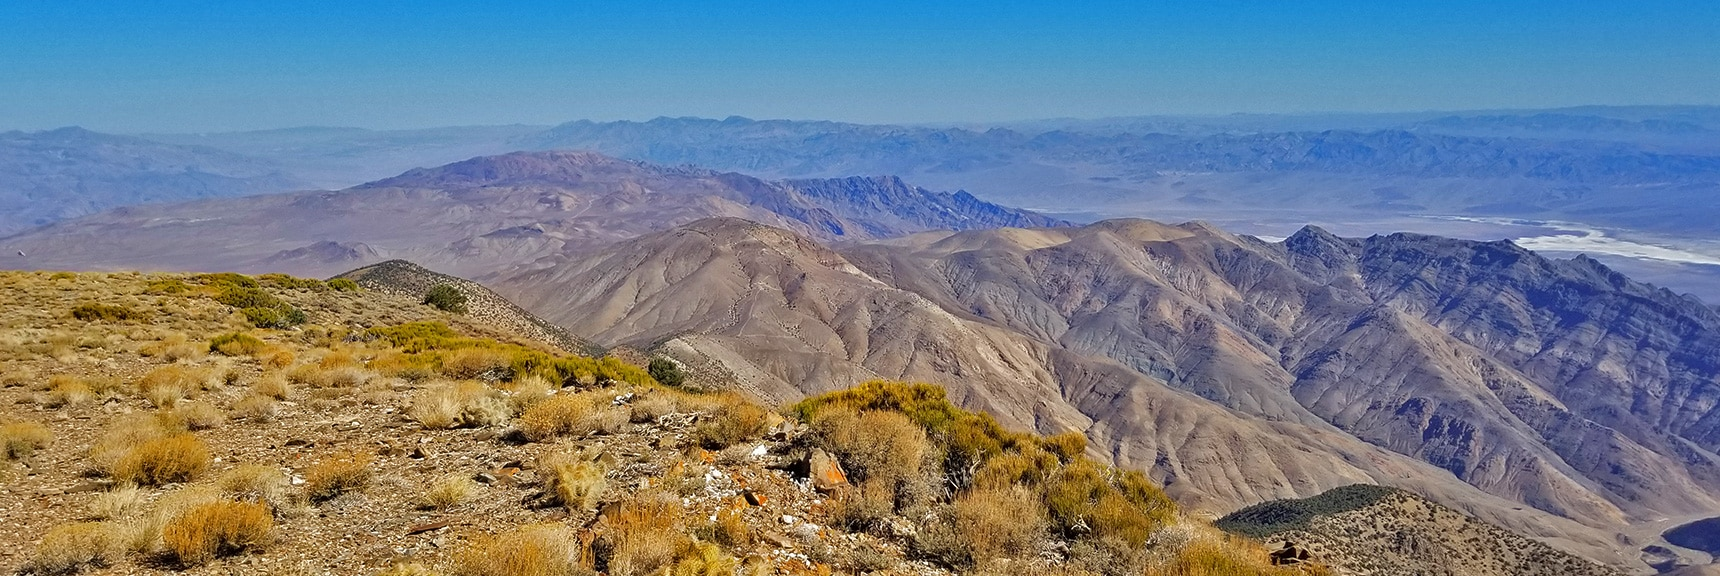 View North Toward Aguereberry Point and Northern Death Valley from Wildrose Peak Summit   Wildrose Peak   Panamint Mountain Range   Death Valley National Park, California